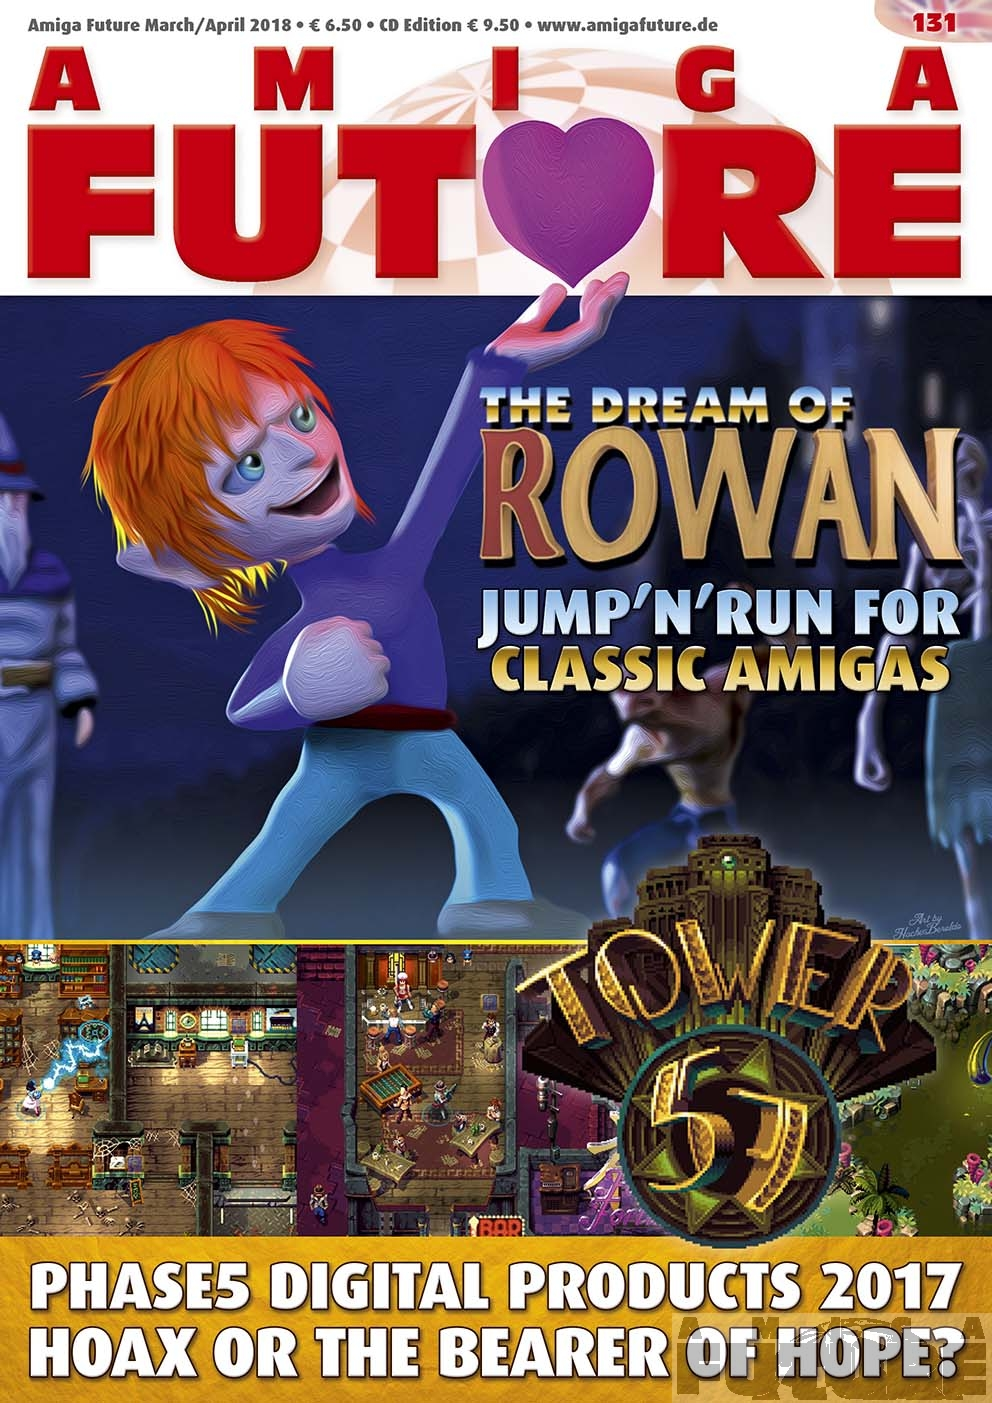 Amiga Future Issue 131 (English)